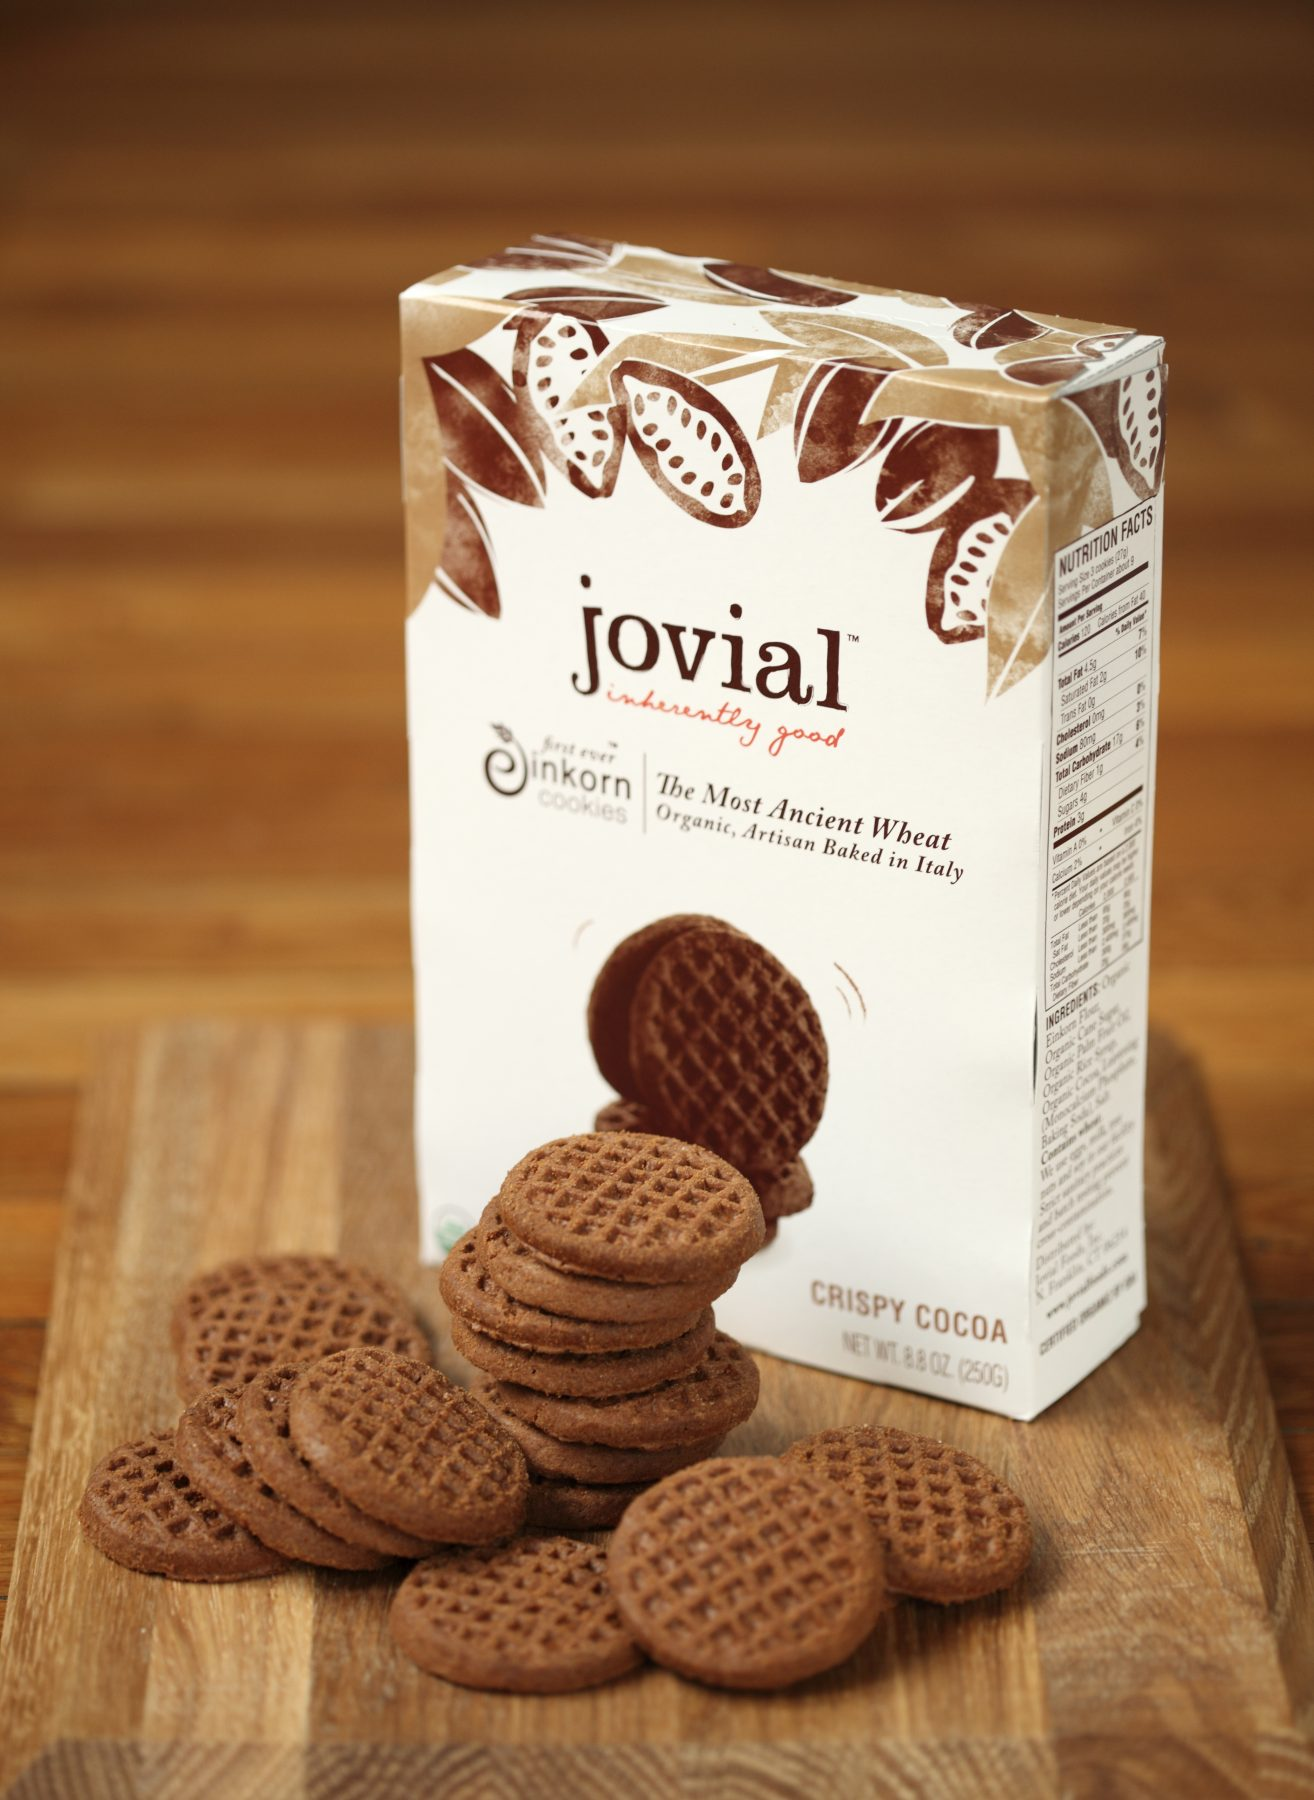 Accidentally Vegan: Einkorn Crispy Cocoa Cookies by Jovial!